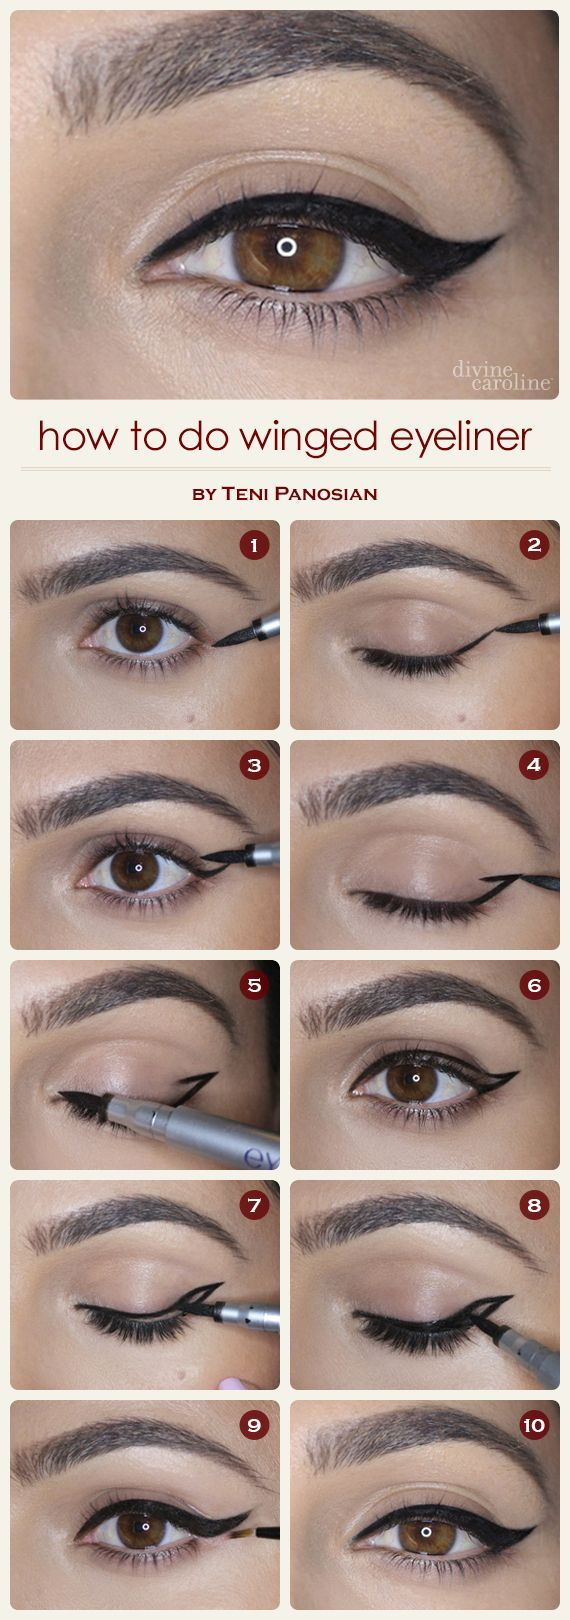 10 Irresistible Cat Eyeliner Tutorials for Pretty Girls